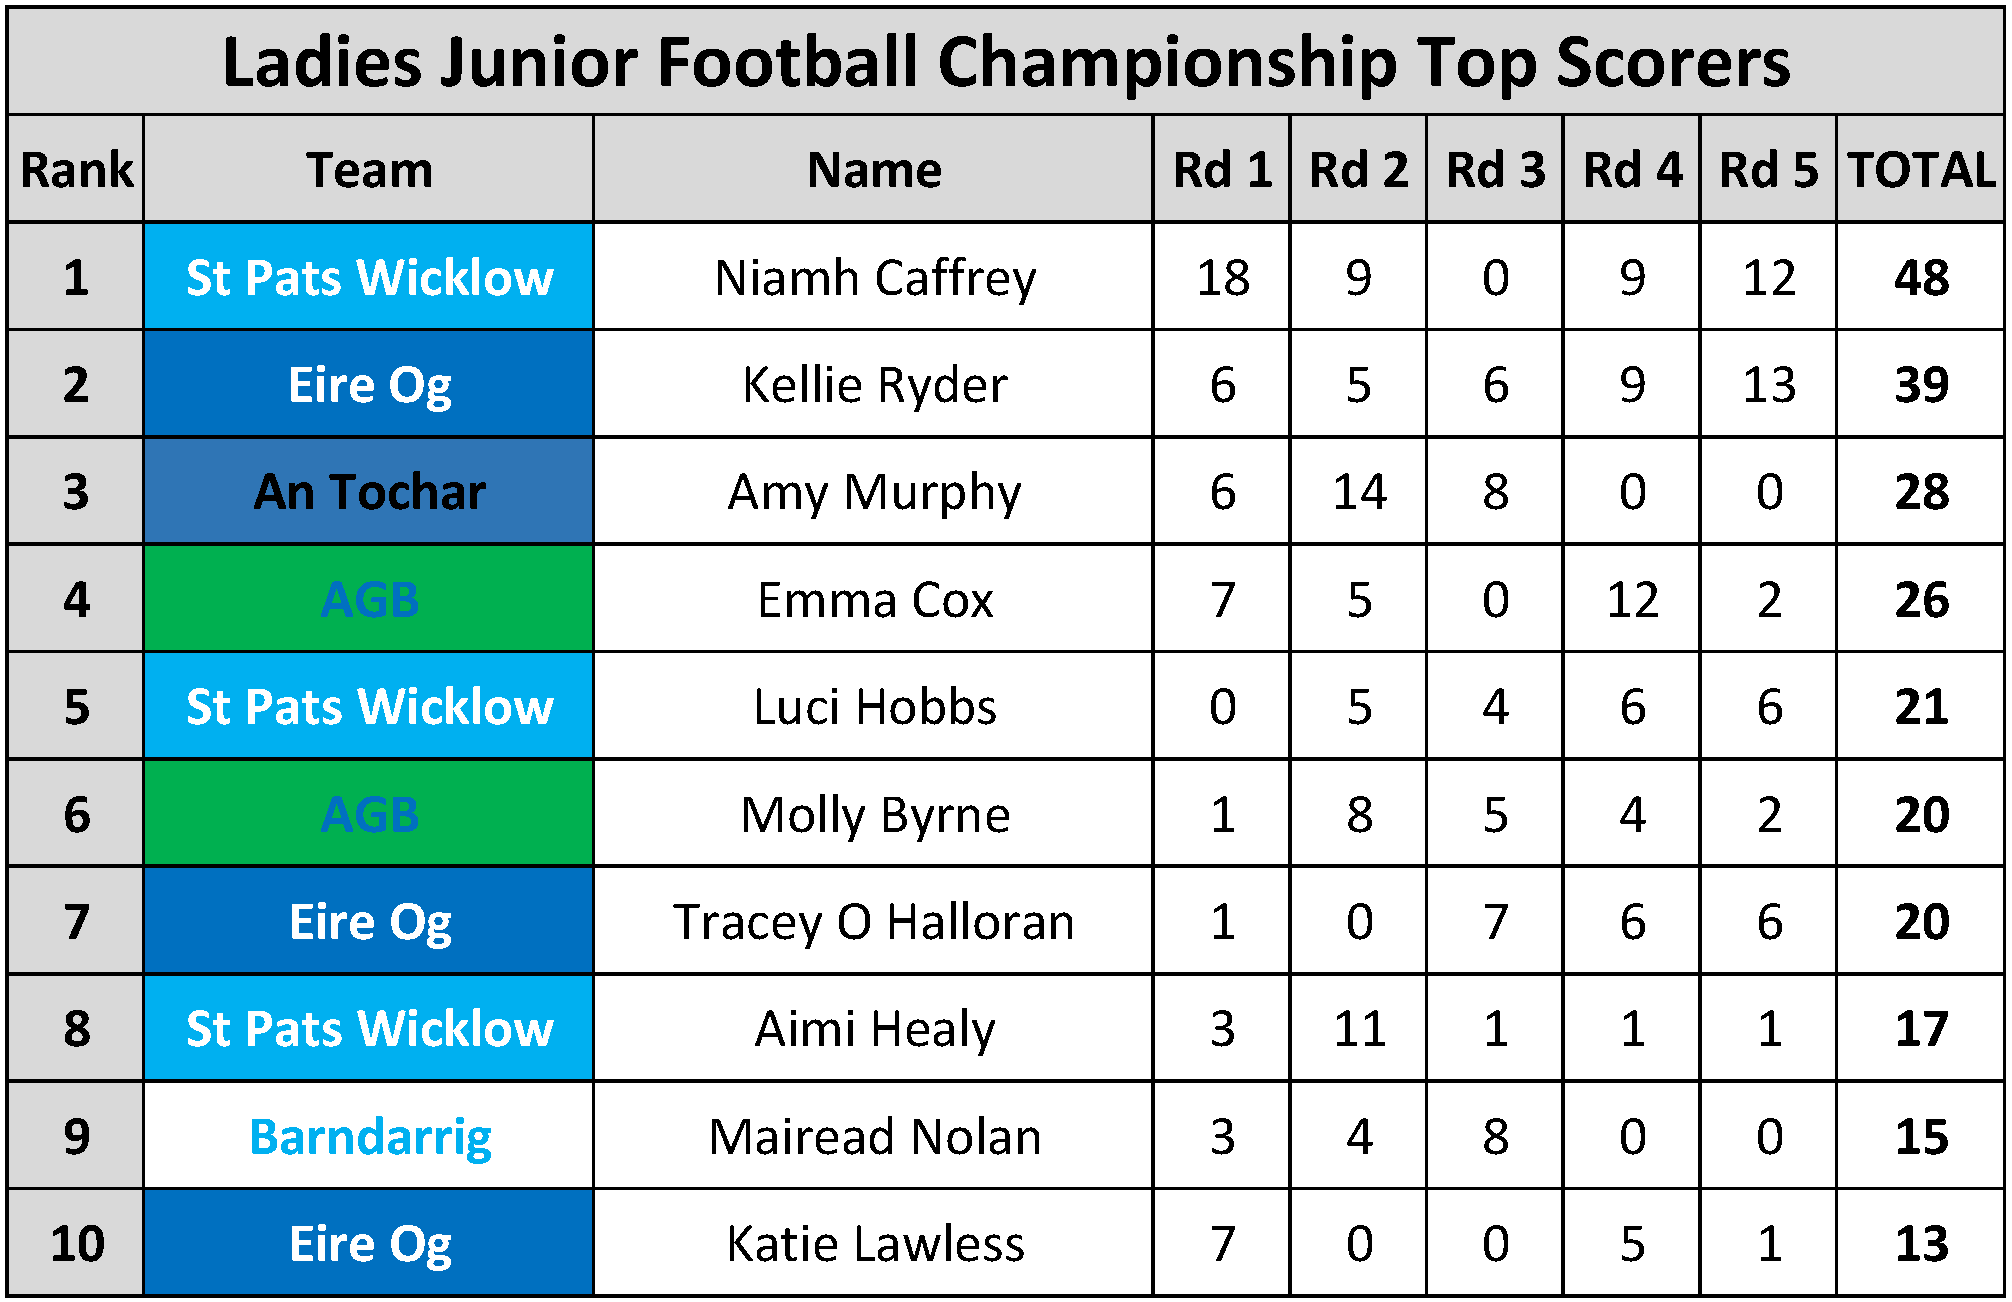 Top Scorers_Page_102